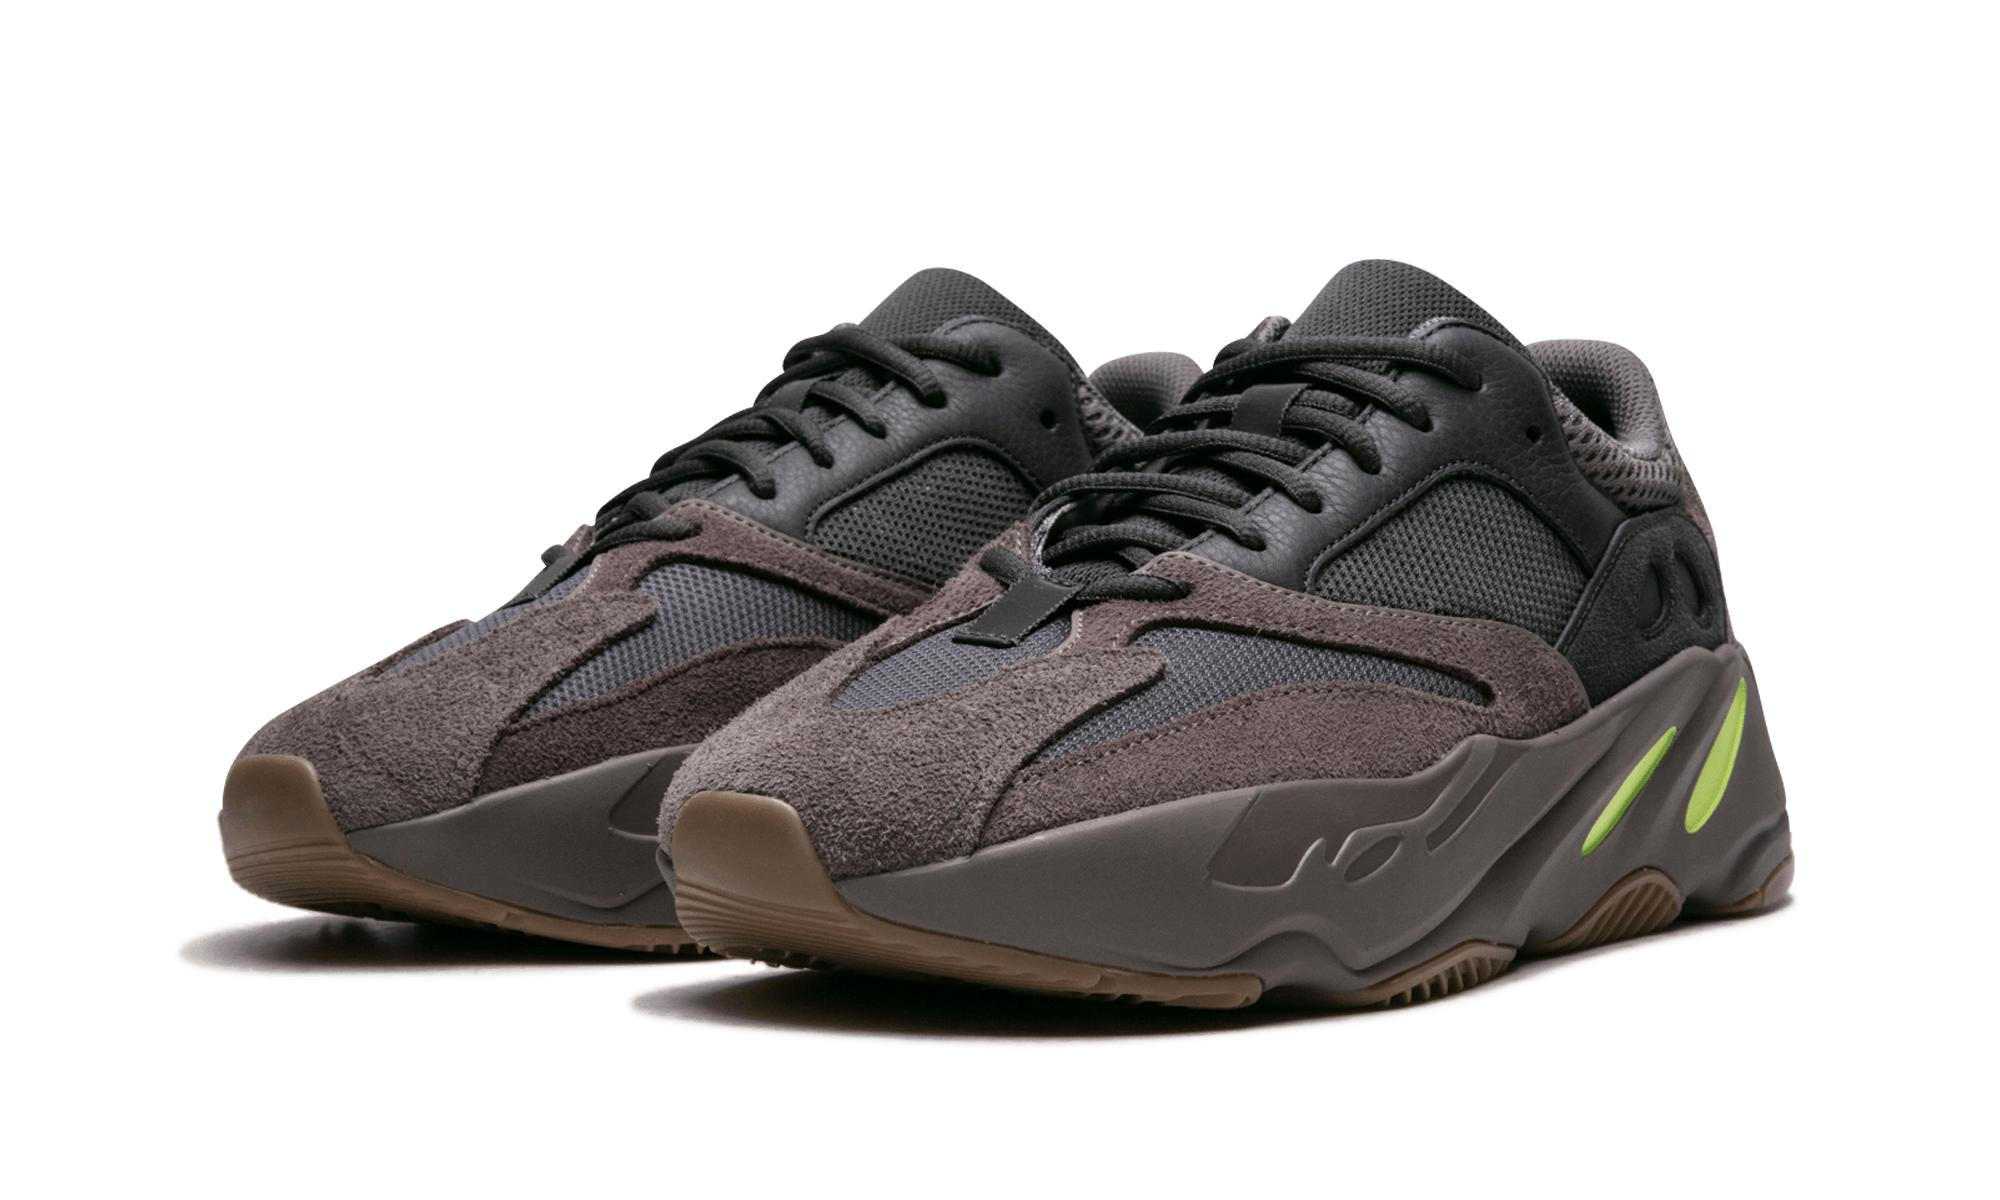 59c39464c80 Adidas - Purple Yeezy Boost 700 for Men - Lyst. View fullscreen